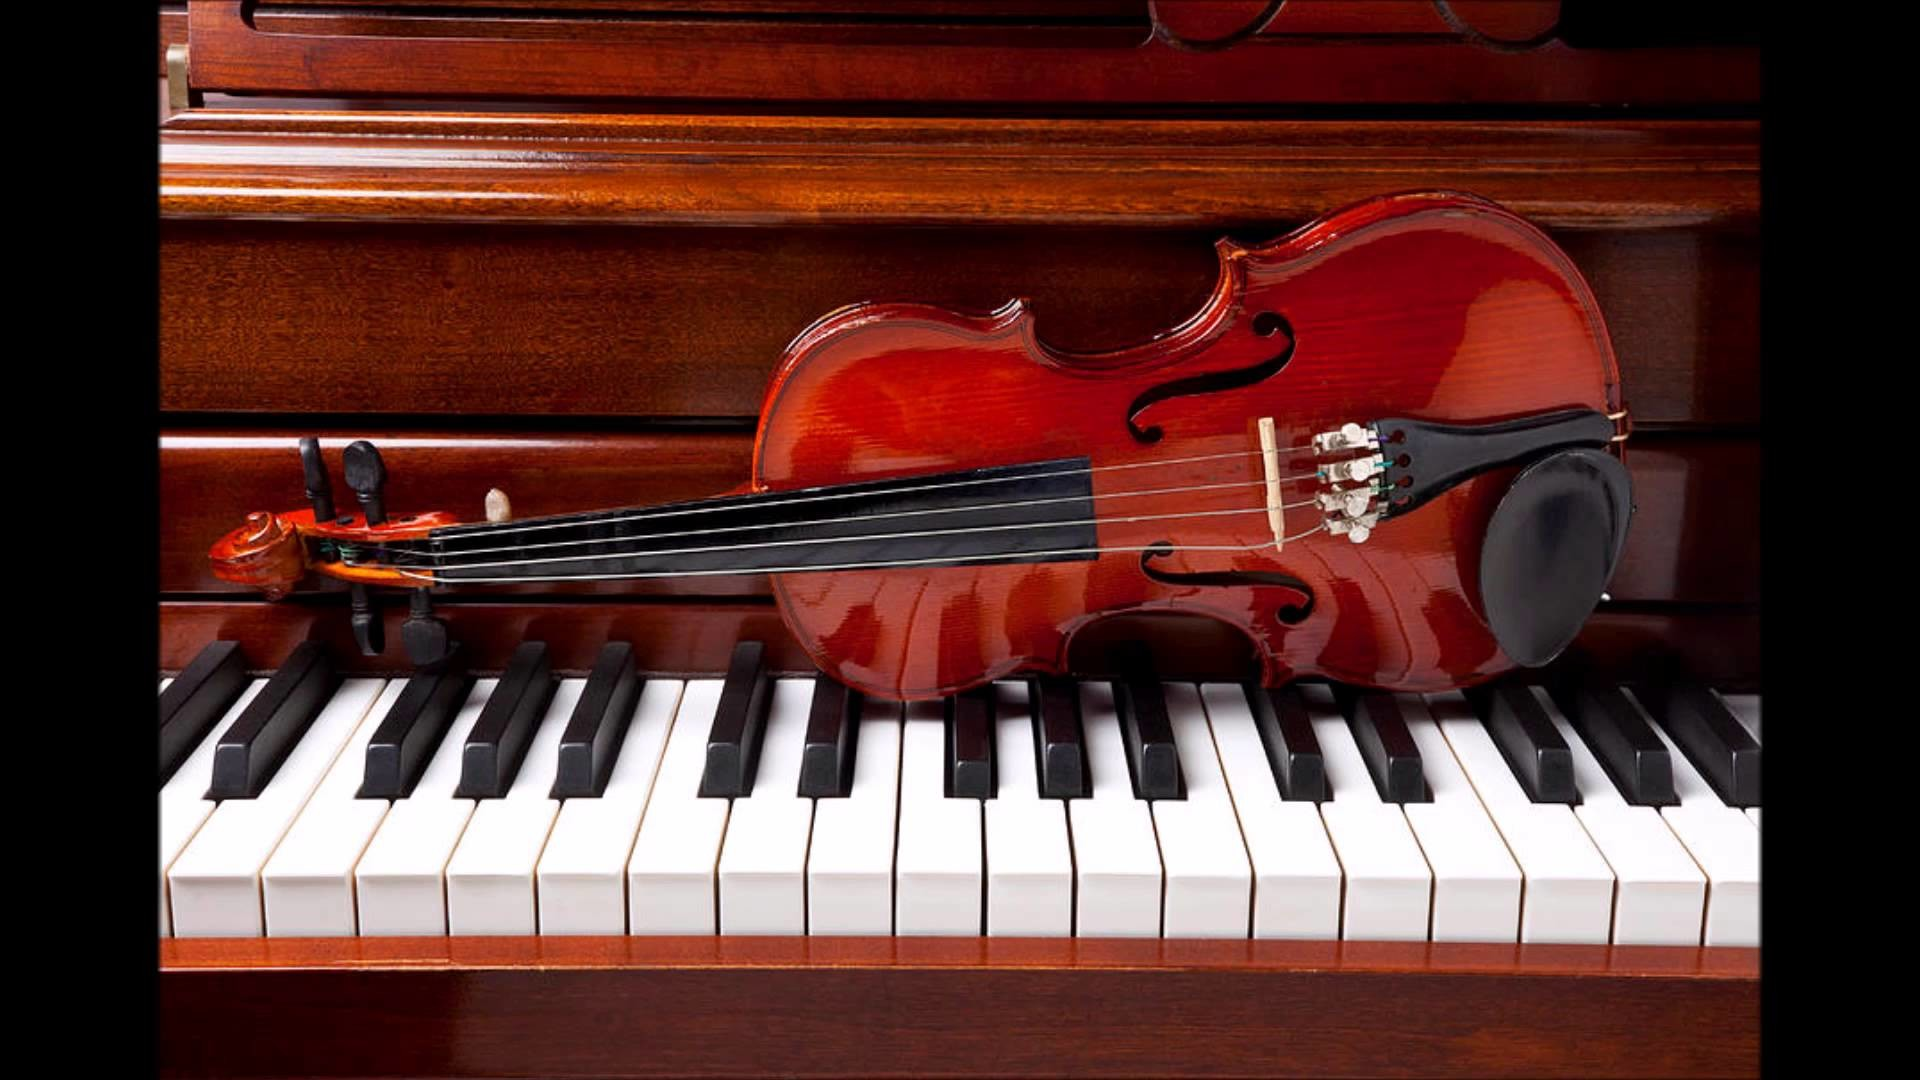 Piano and Violin Wallpaper (62+ images)